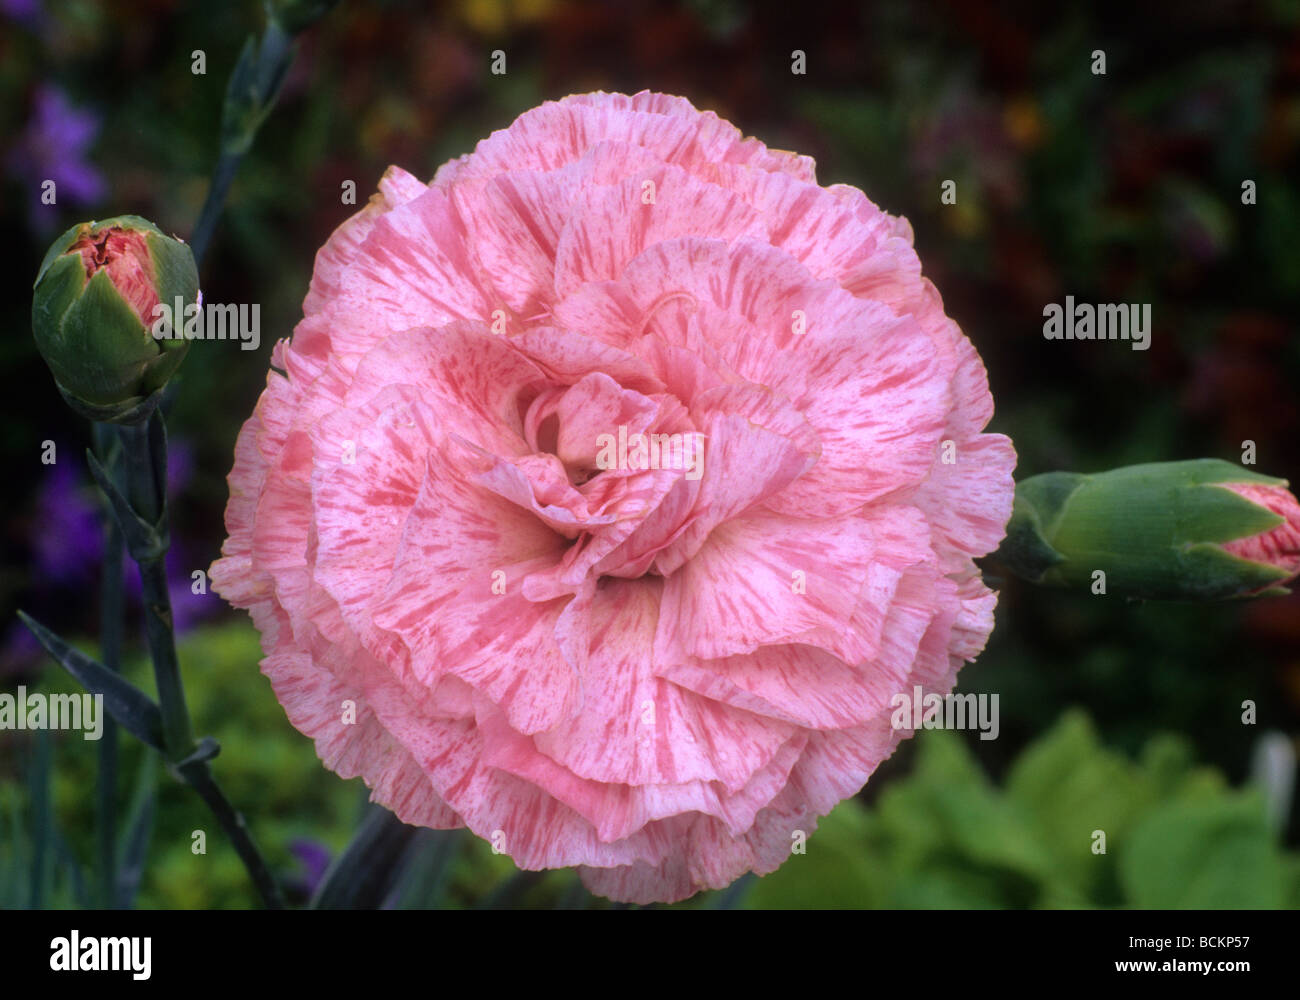 Dianthus strawberries and cream pink carnation flower flowers dianthus strawberries and cream pink carnation flower flowers garden plant plants mightylinksfo